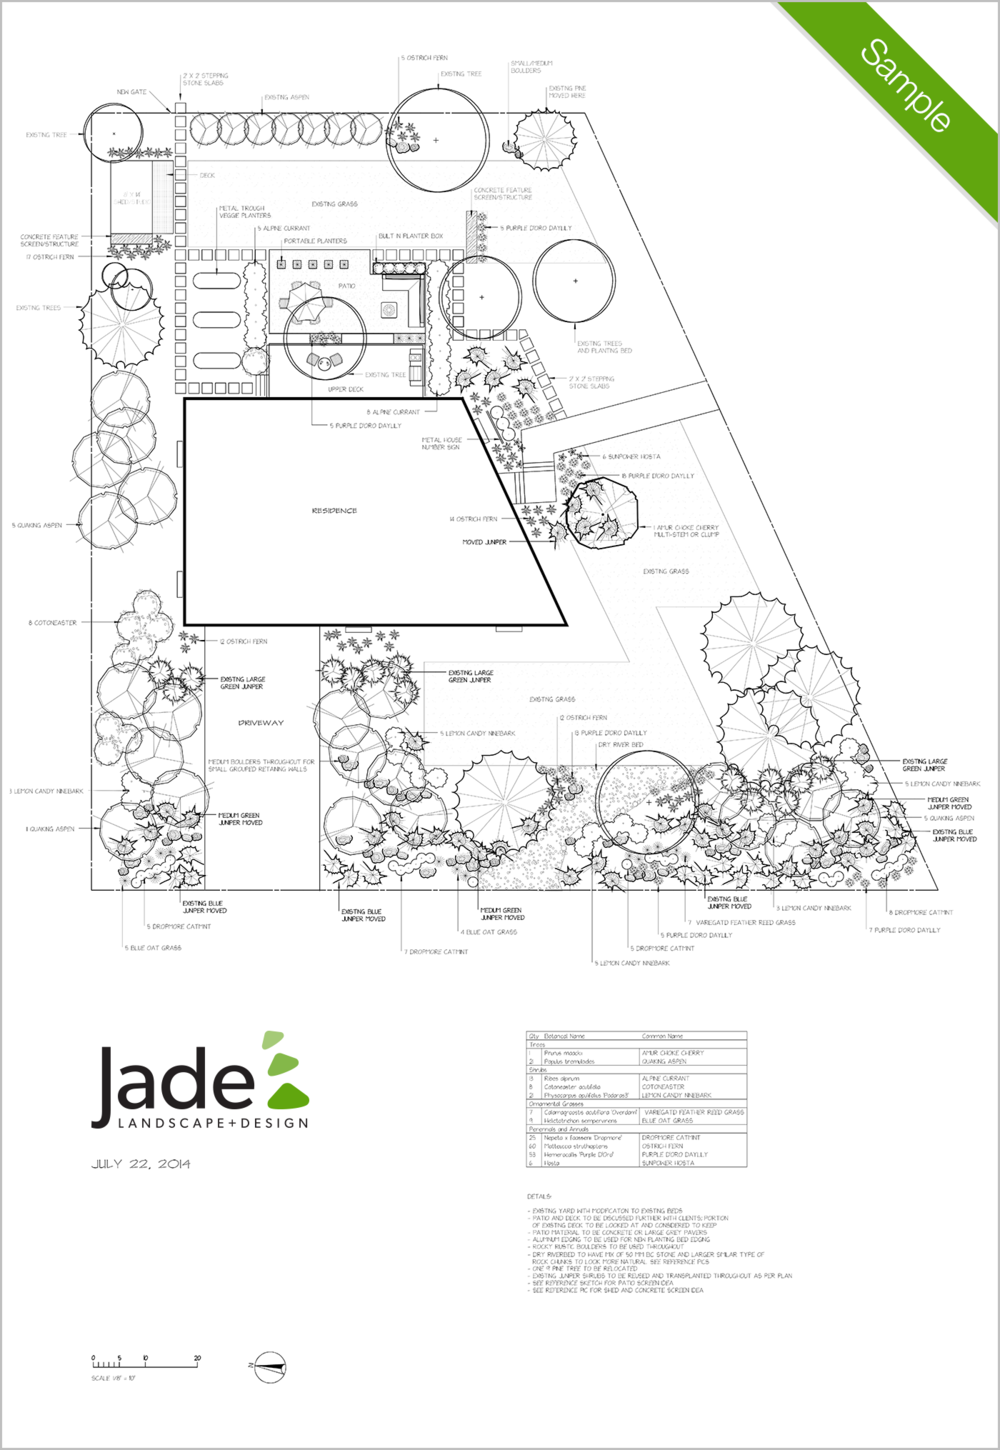 jade-landscape-sample-plan.png